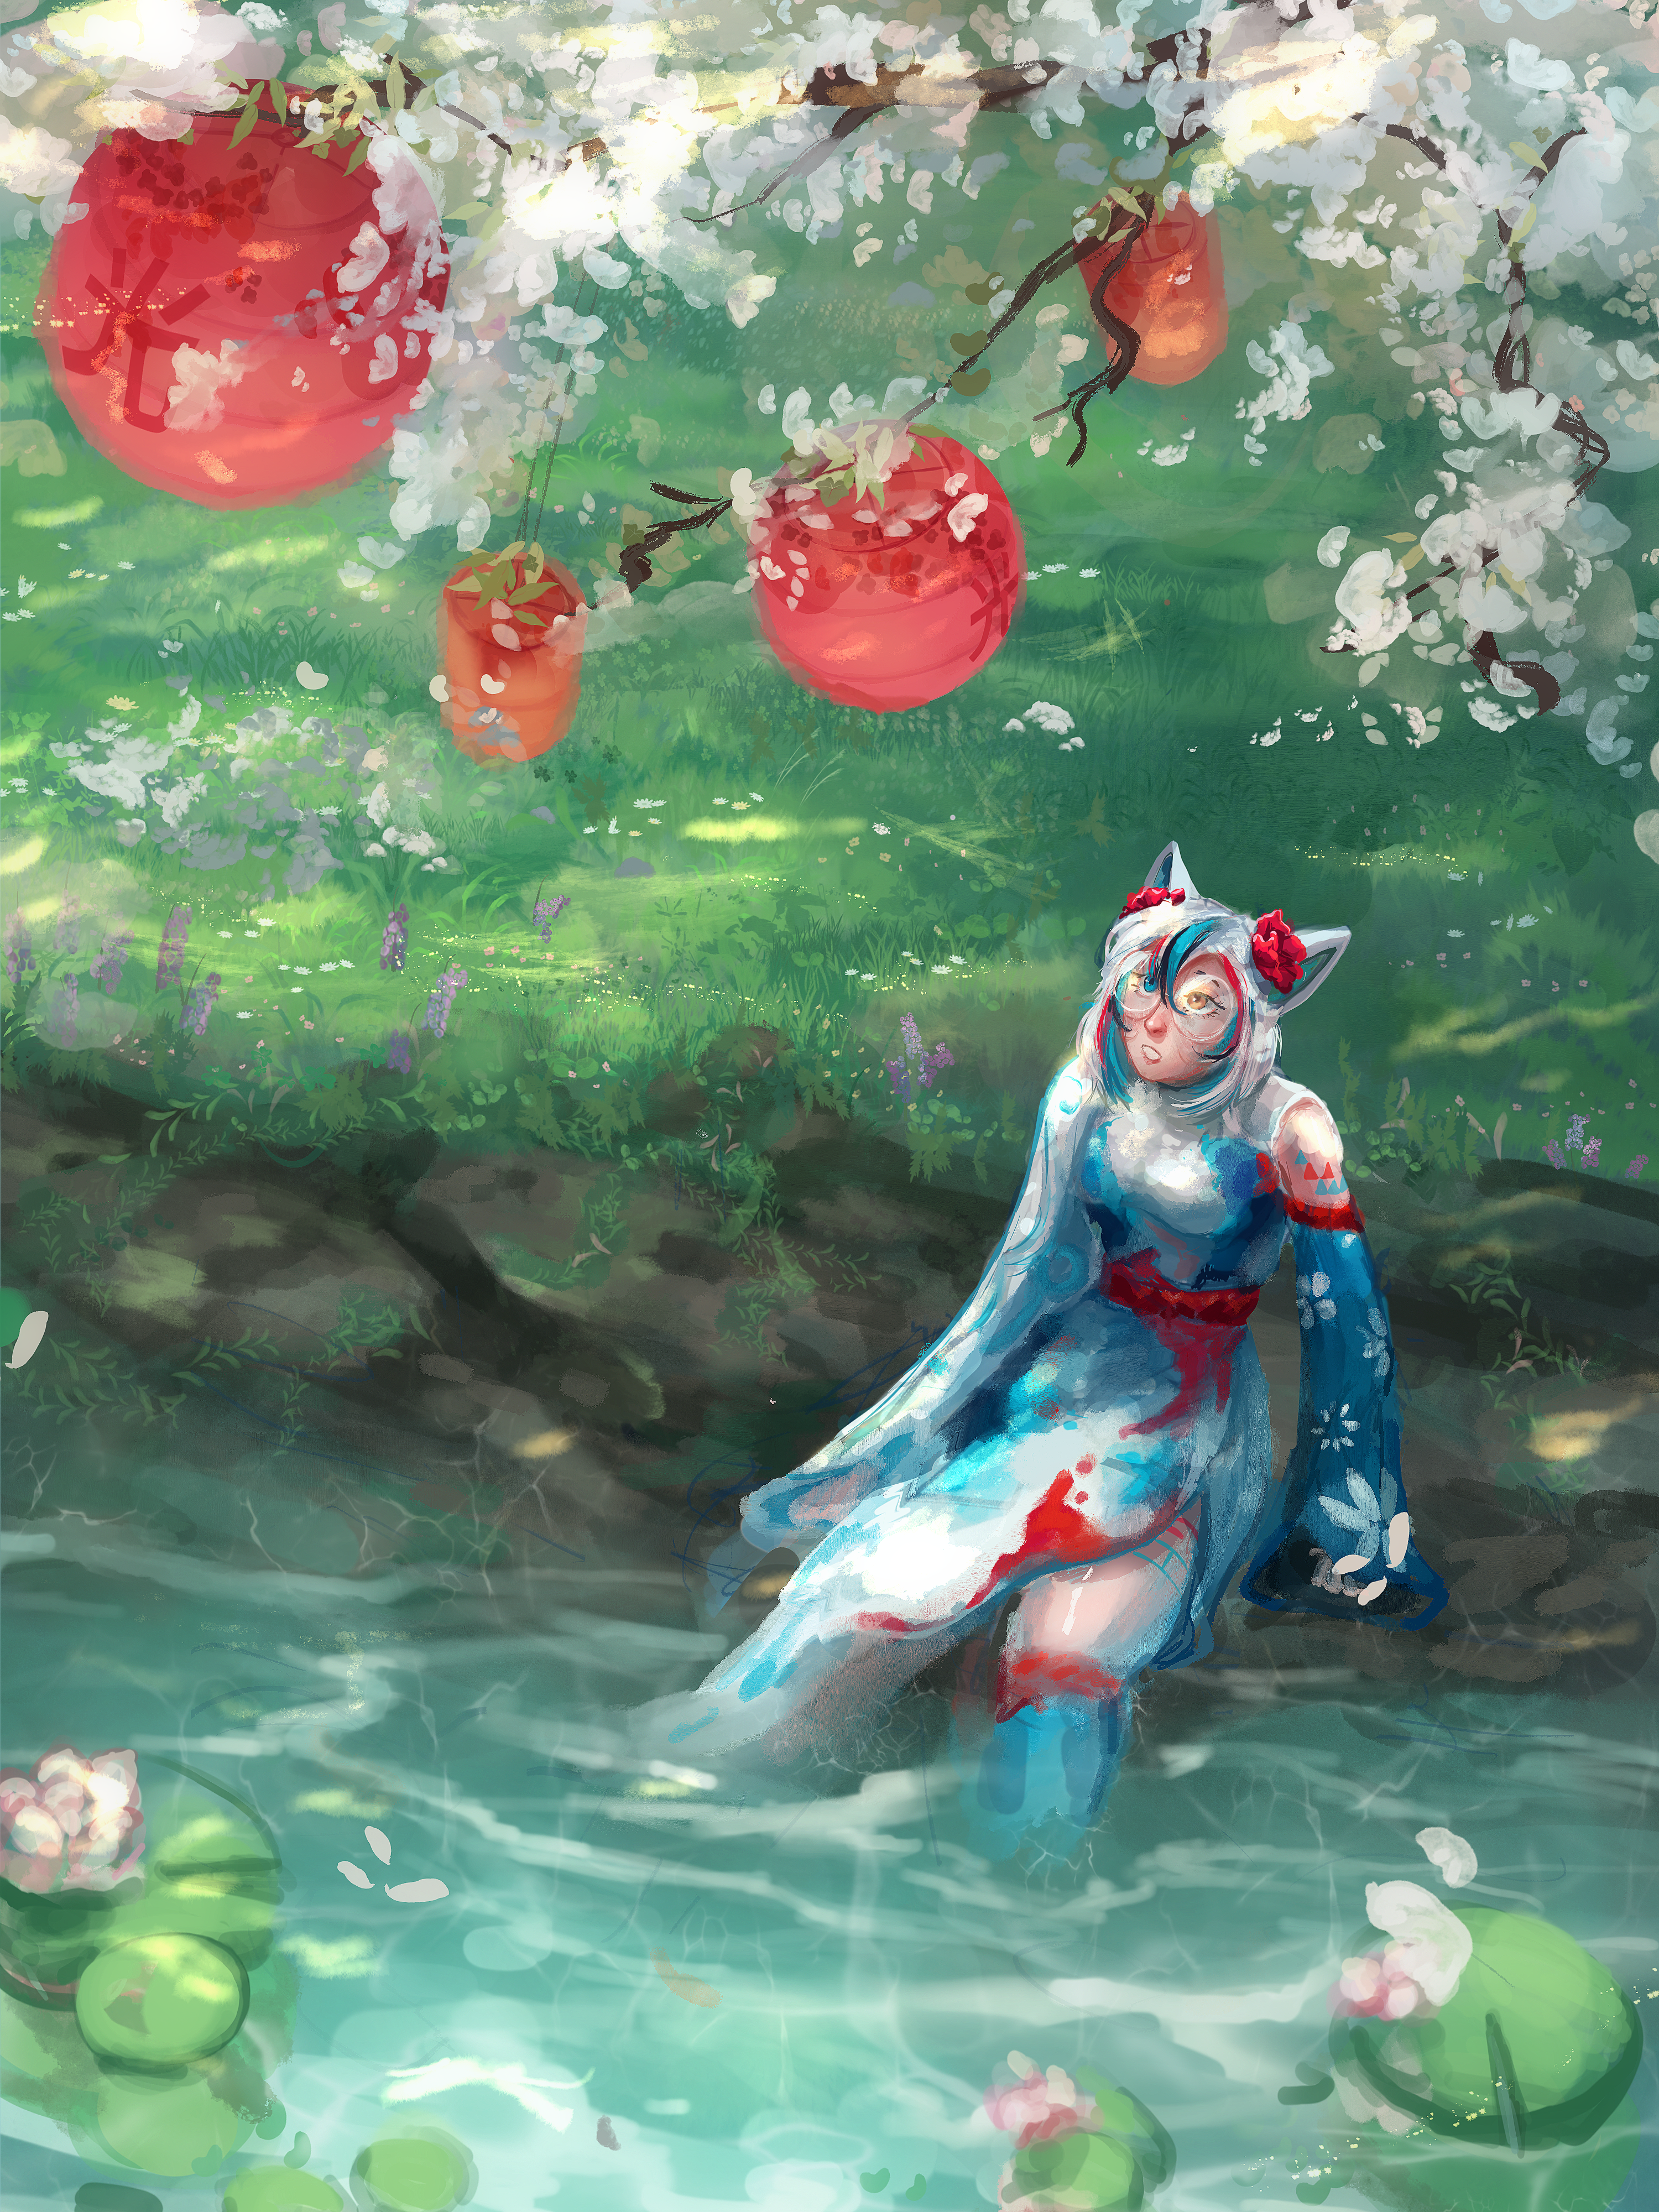 Out by the Cherry Blossoms [CONTEST ENTRY]